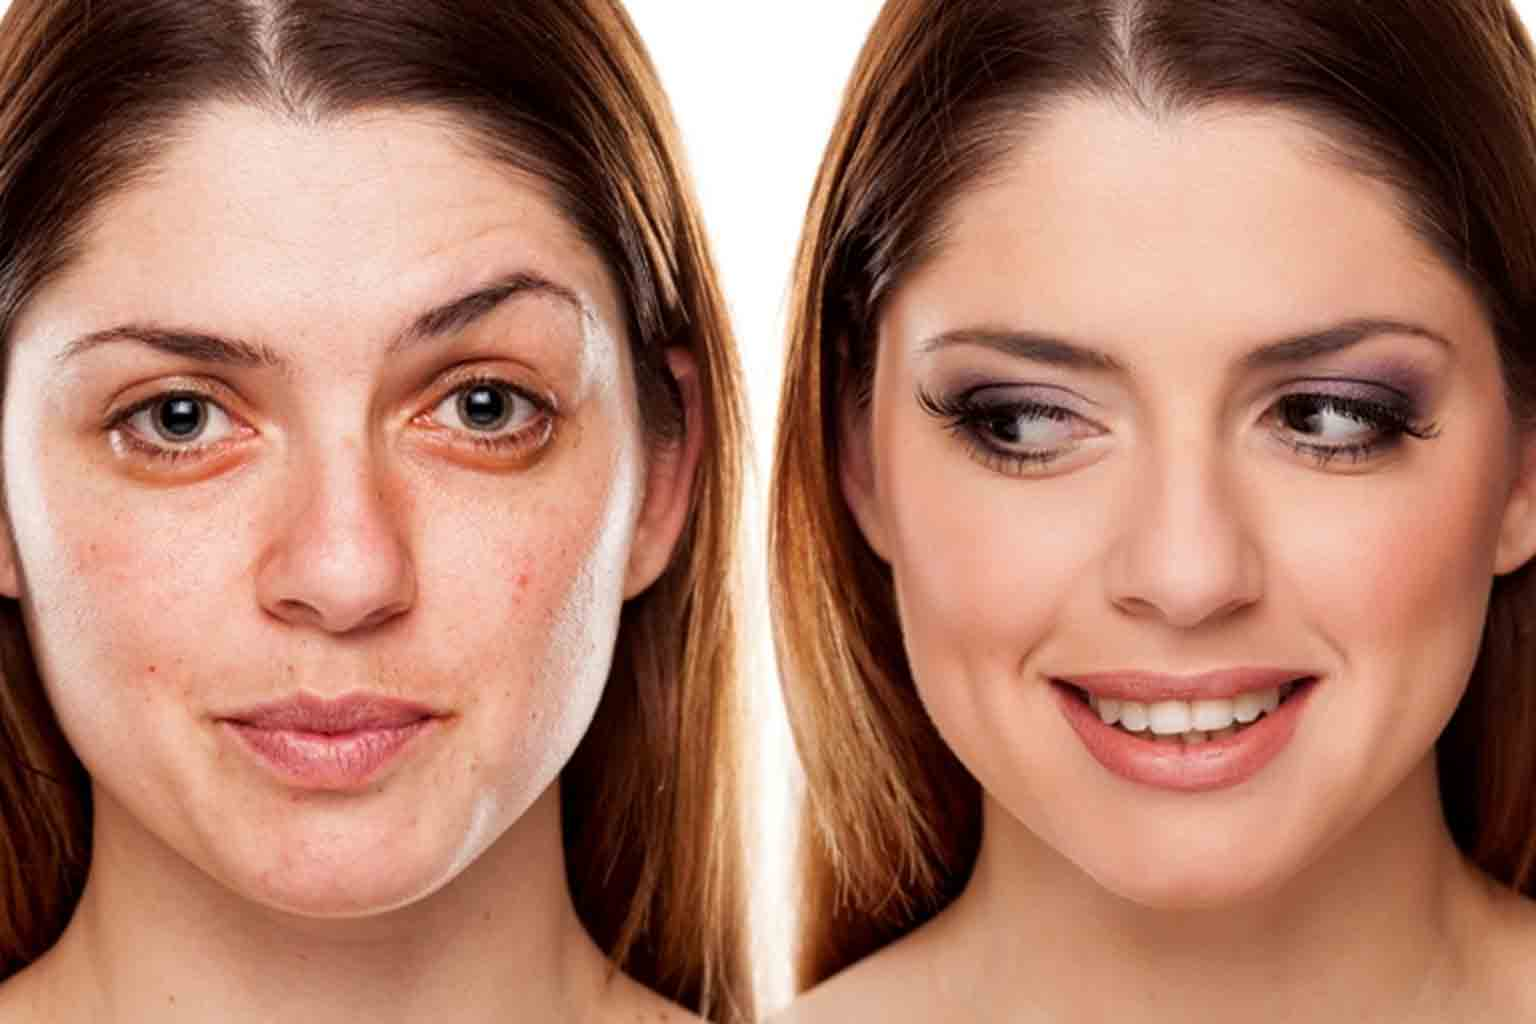 Facial Fillers are not for everyone